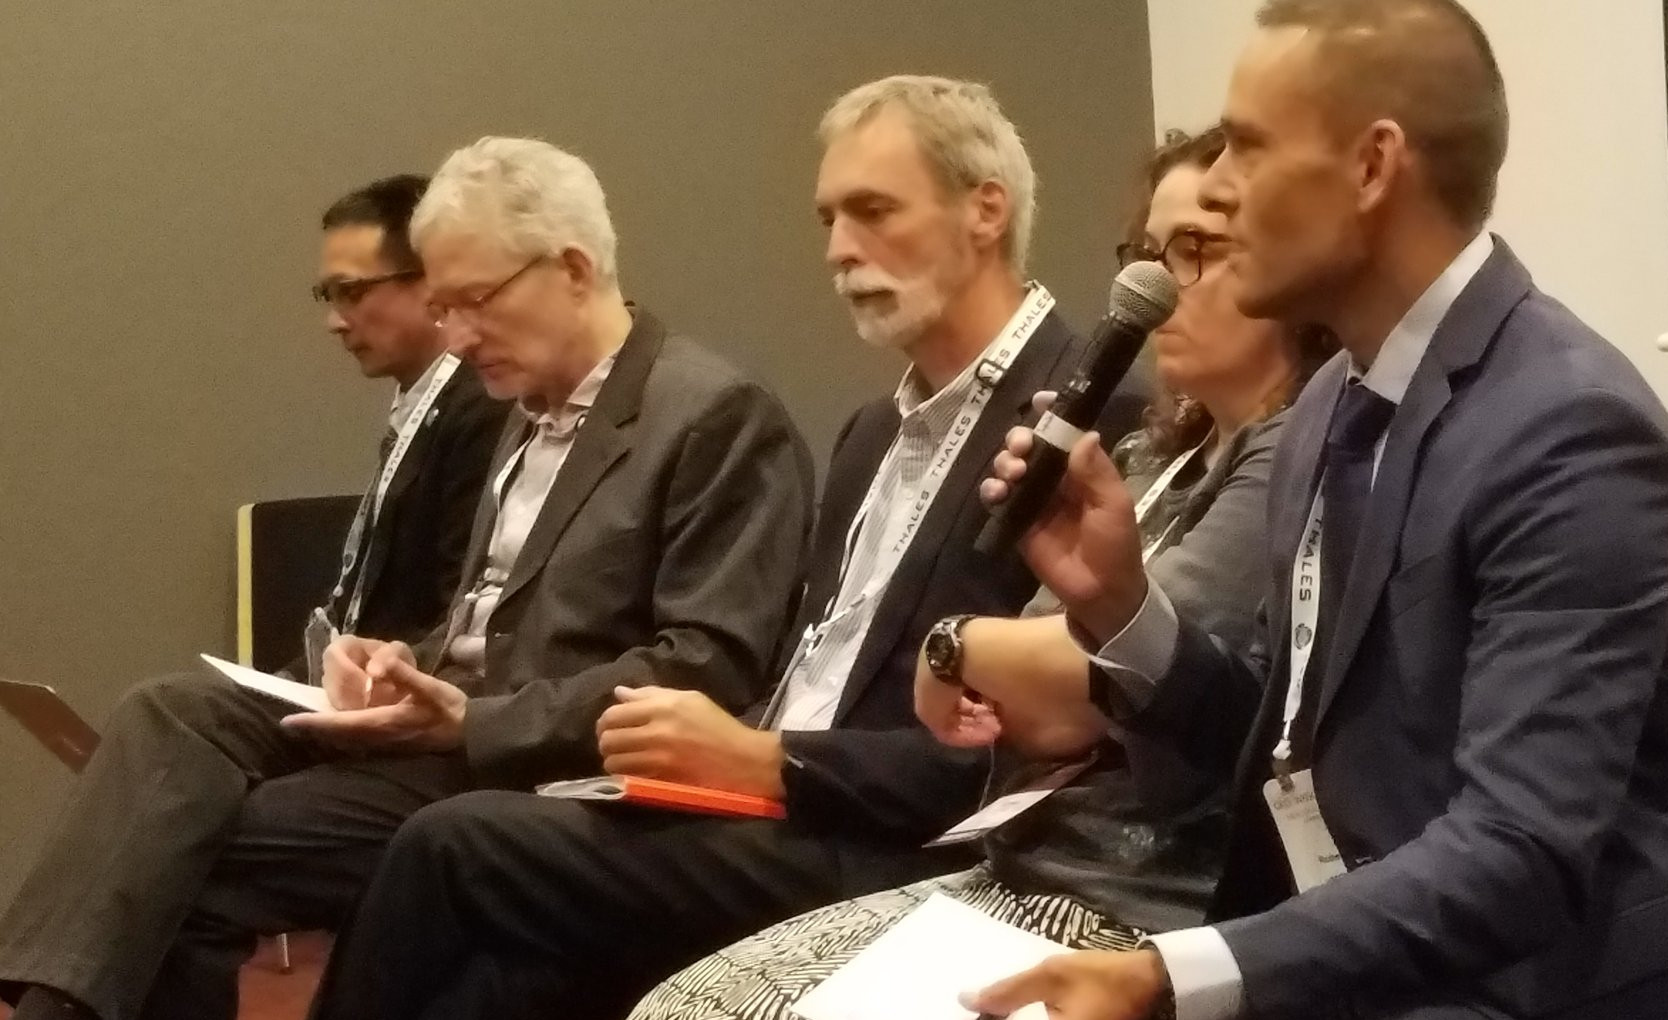 Panelists (right to left) Duncan McIntosh. (SPREP), Karen Evans (CSIRO), Nic Bax (CSIRO/MBON), Douglas Cripe (GEO Secretariat) and Ken Ando (JAMSTEC/AOGEO/IOC WESTPAC) discuss how GEO can contribute to the Decade of Ocean Science for Sustainable Development at GEO Week 2019.